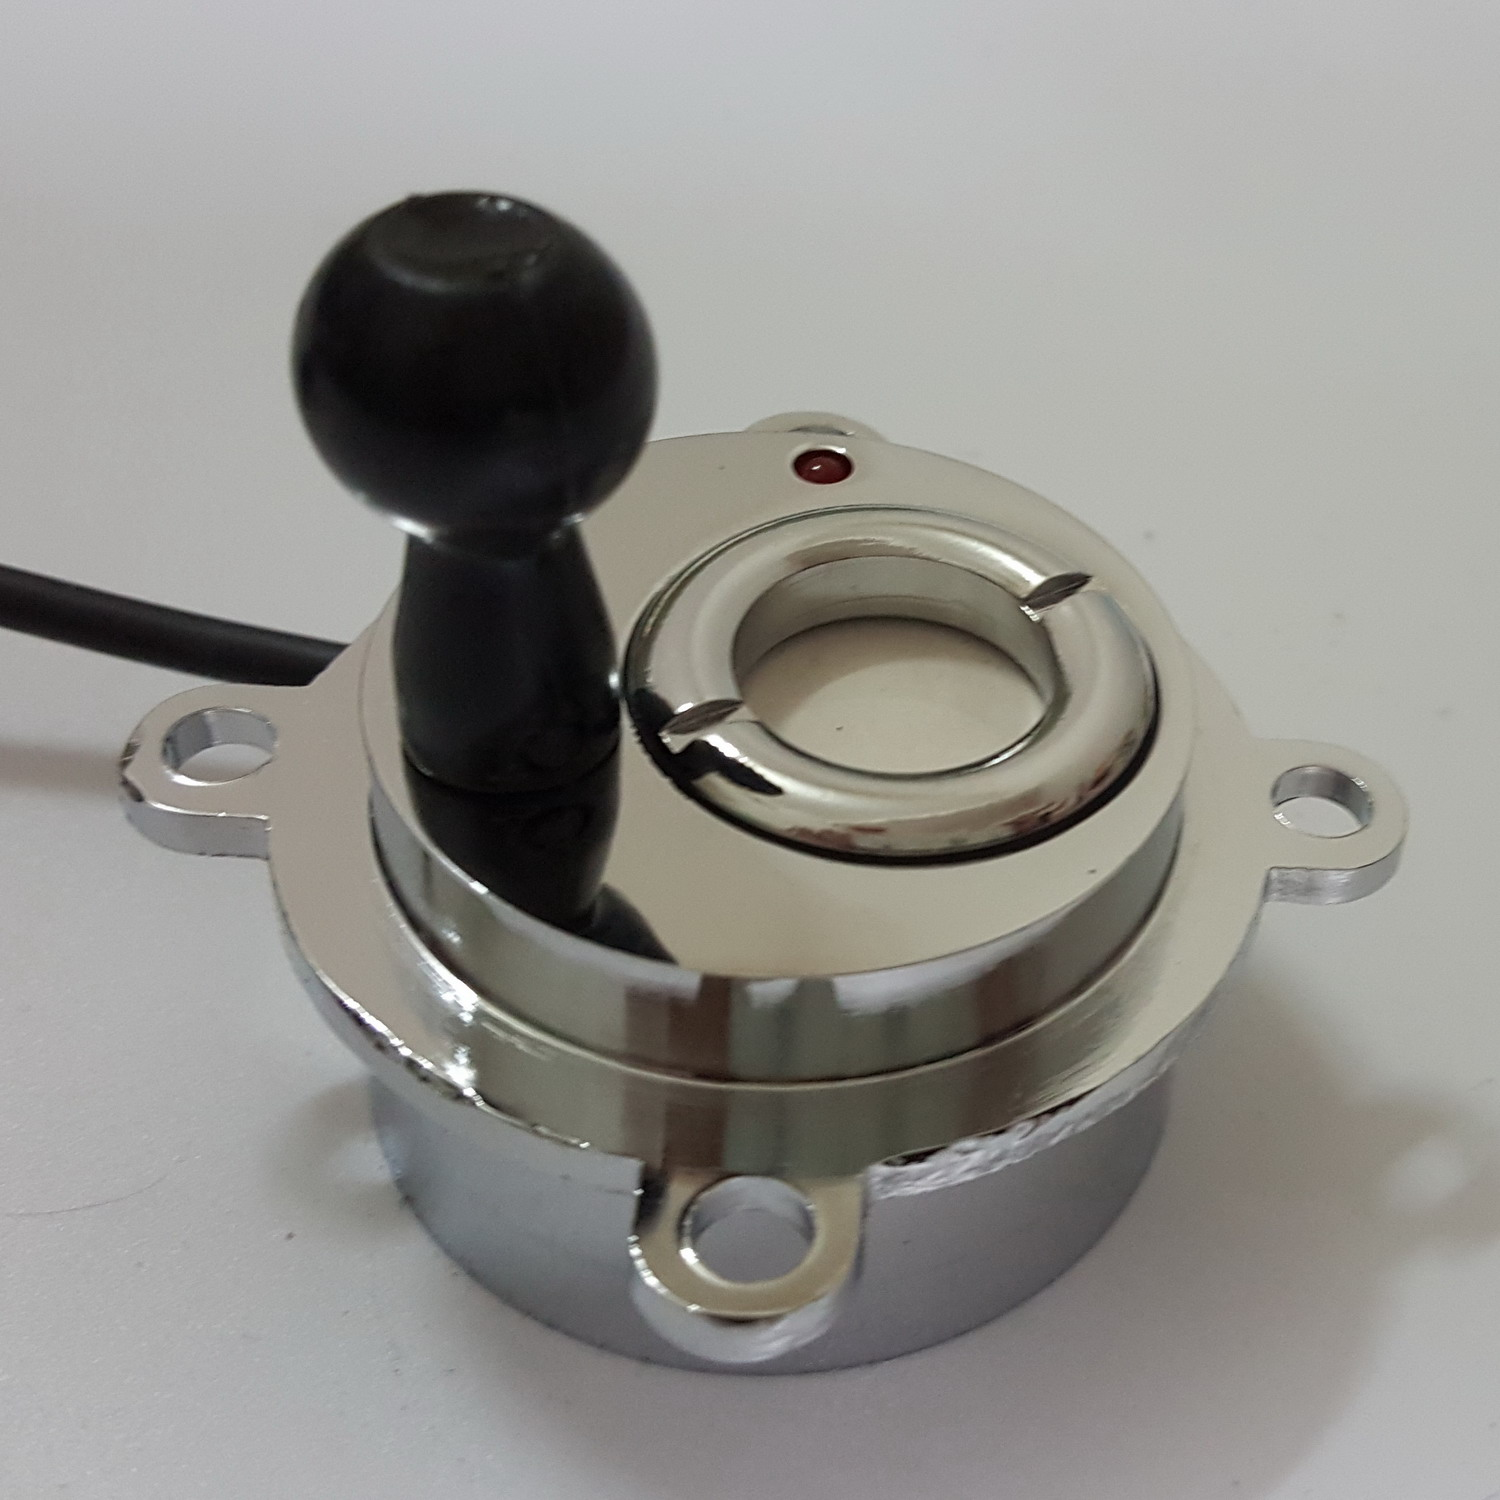 Large Fog Atomizer Atomizing Head Ultrasonic Plate Fogger Circuit Air Humidifier Movement Accessories